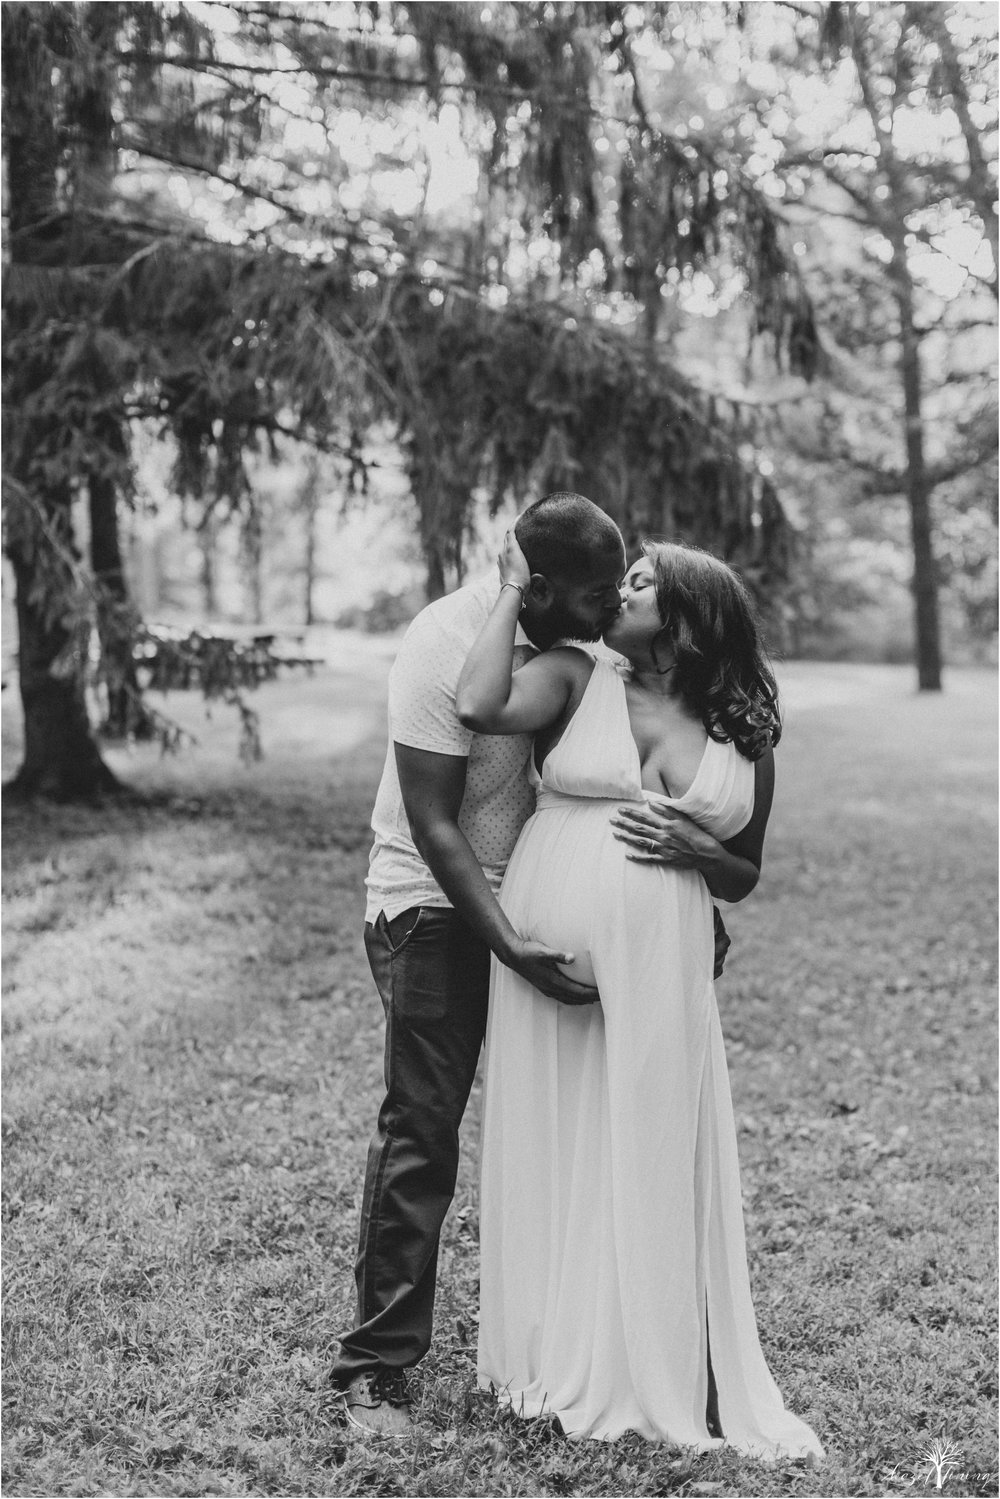 leyka-kristofer-chaparro-ralph-stover-state-park-summer-golden-hour-stream-maternity-session-hazel-lining-travel-wedding-elopement-photography_0035.jpg